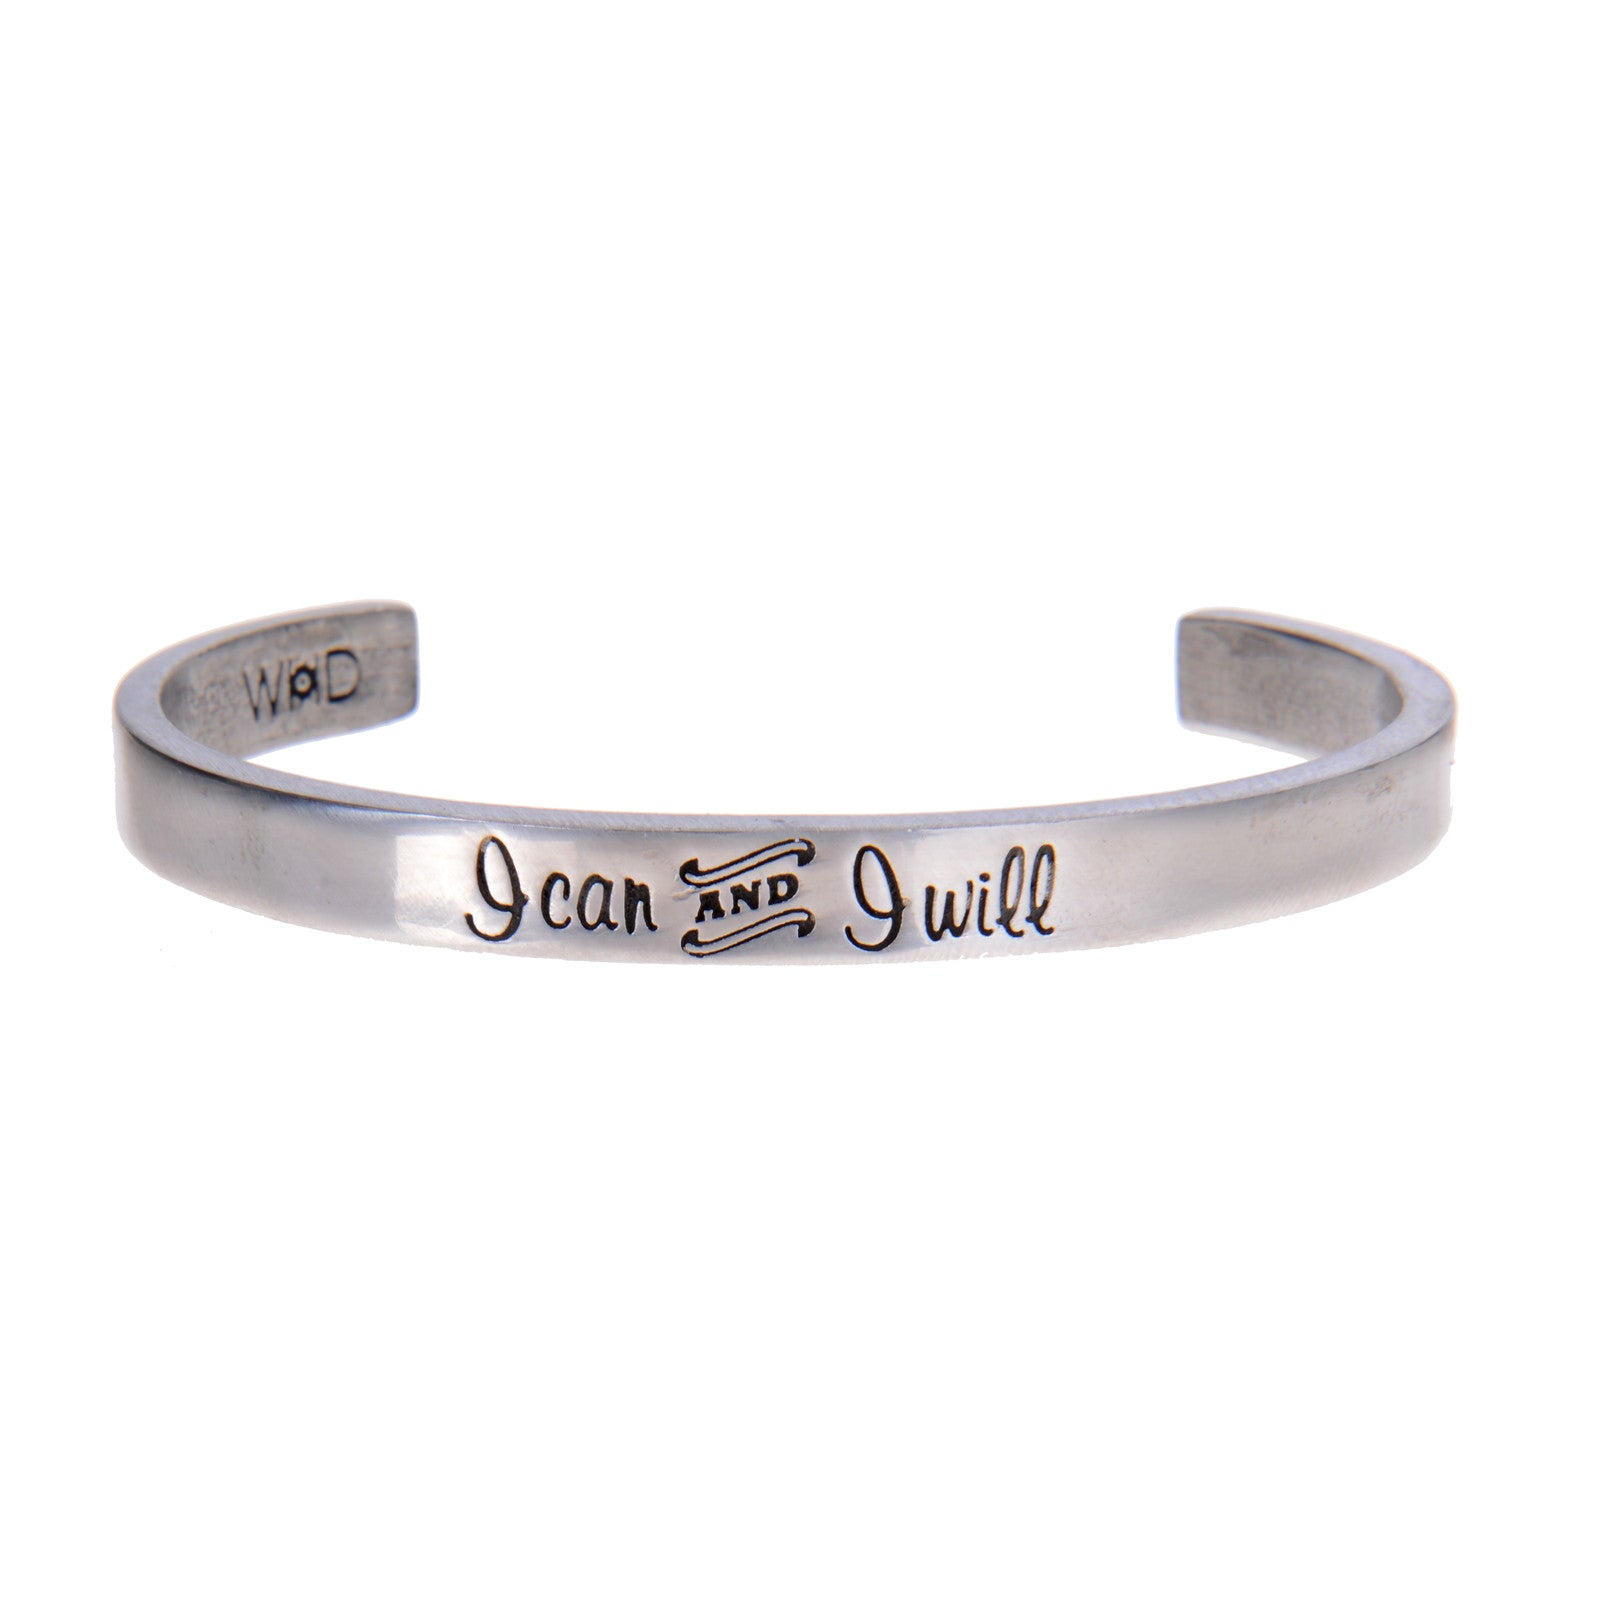 I Can and I Will Quotable Cuff Bracelet